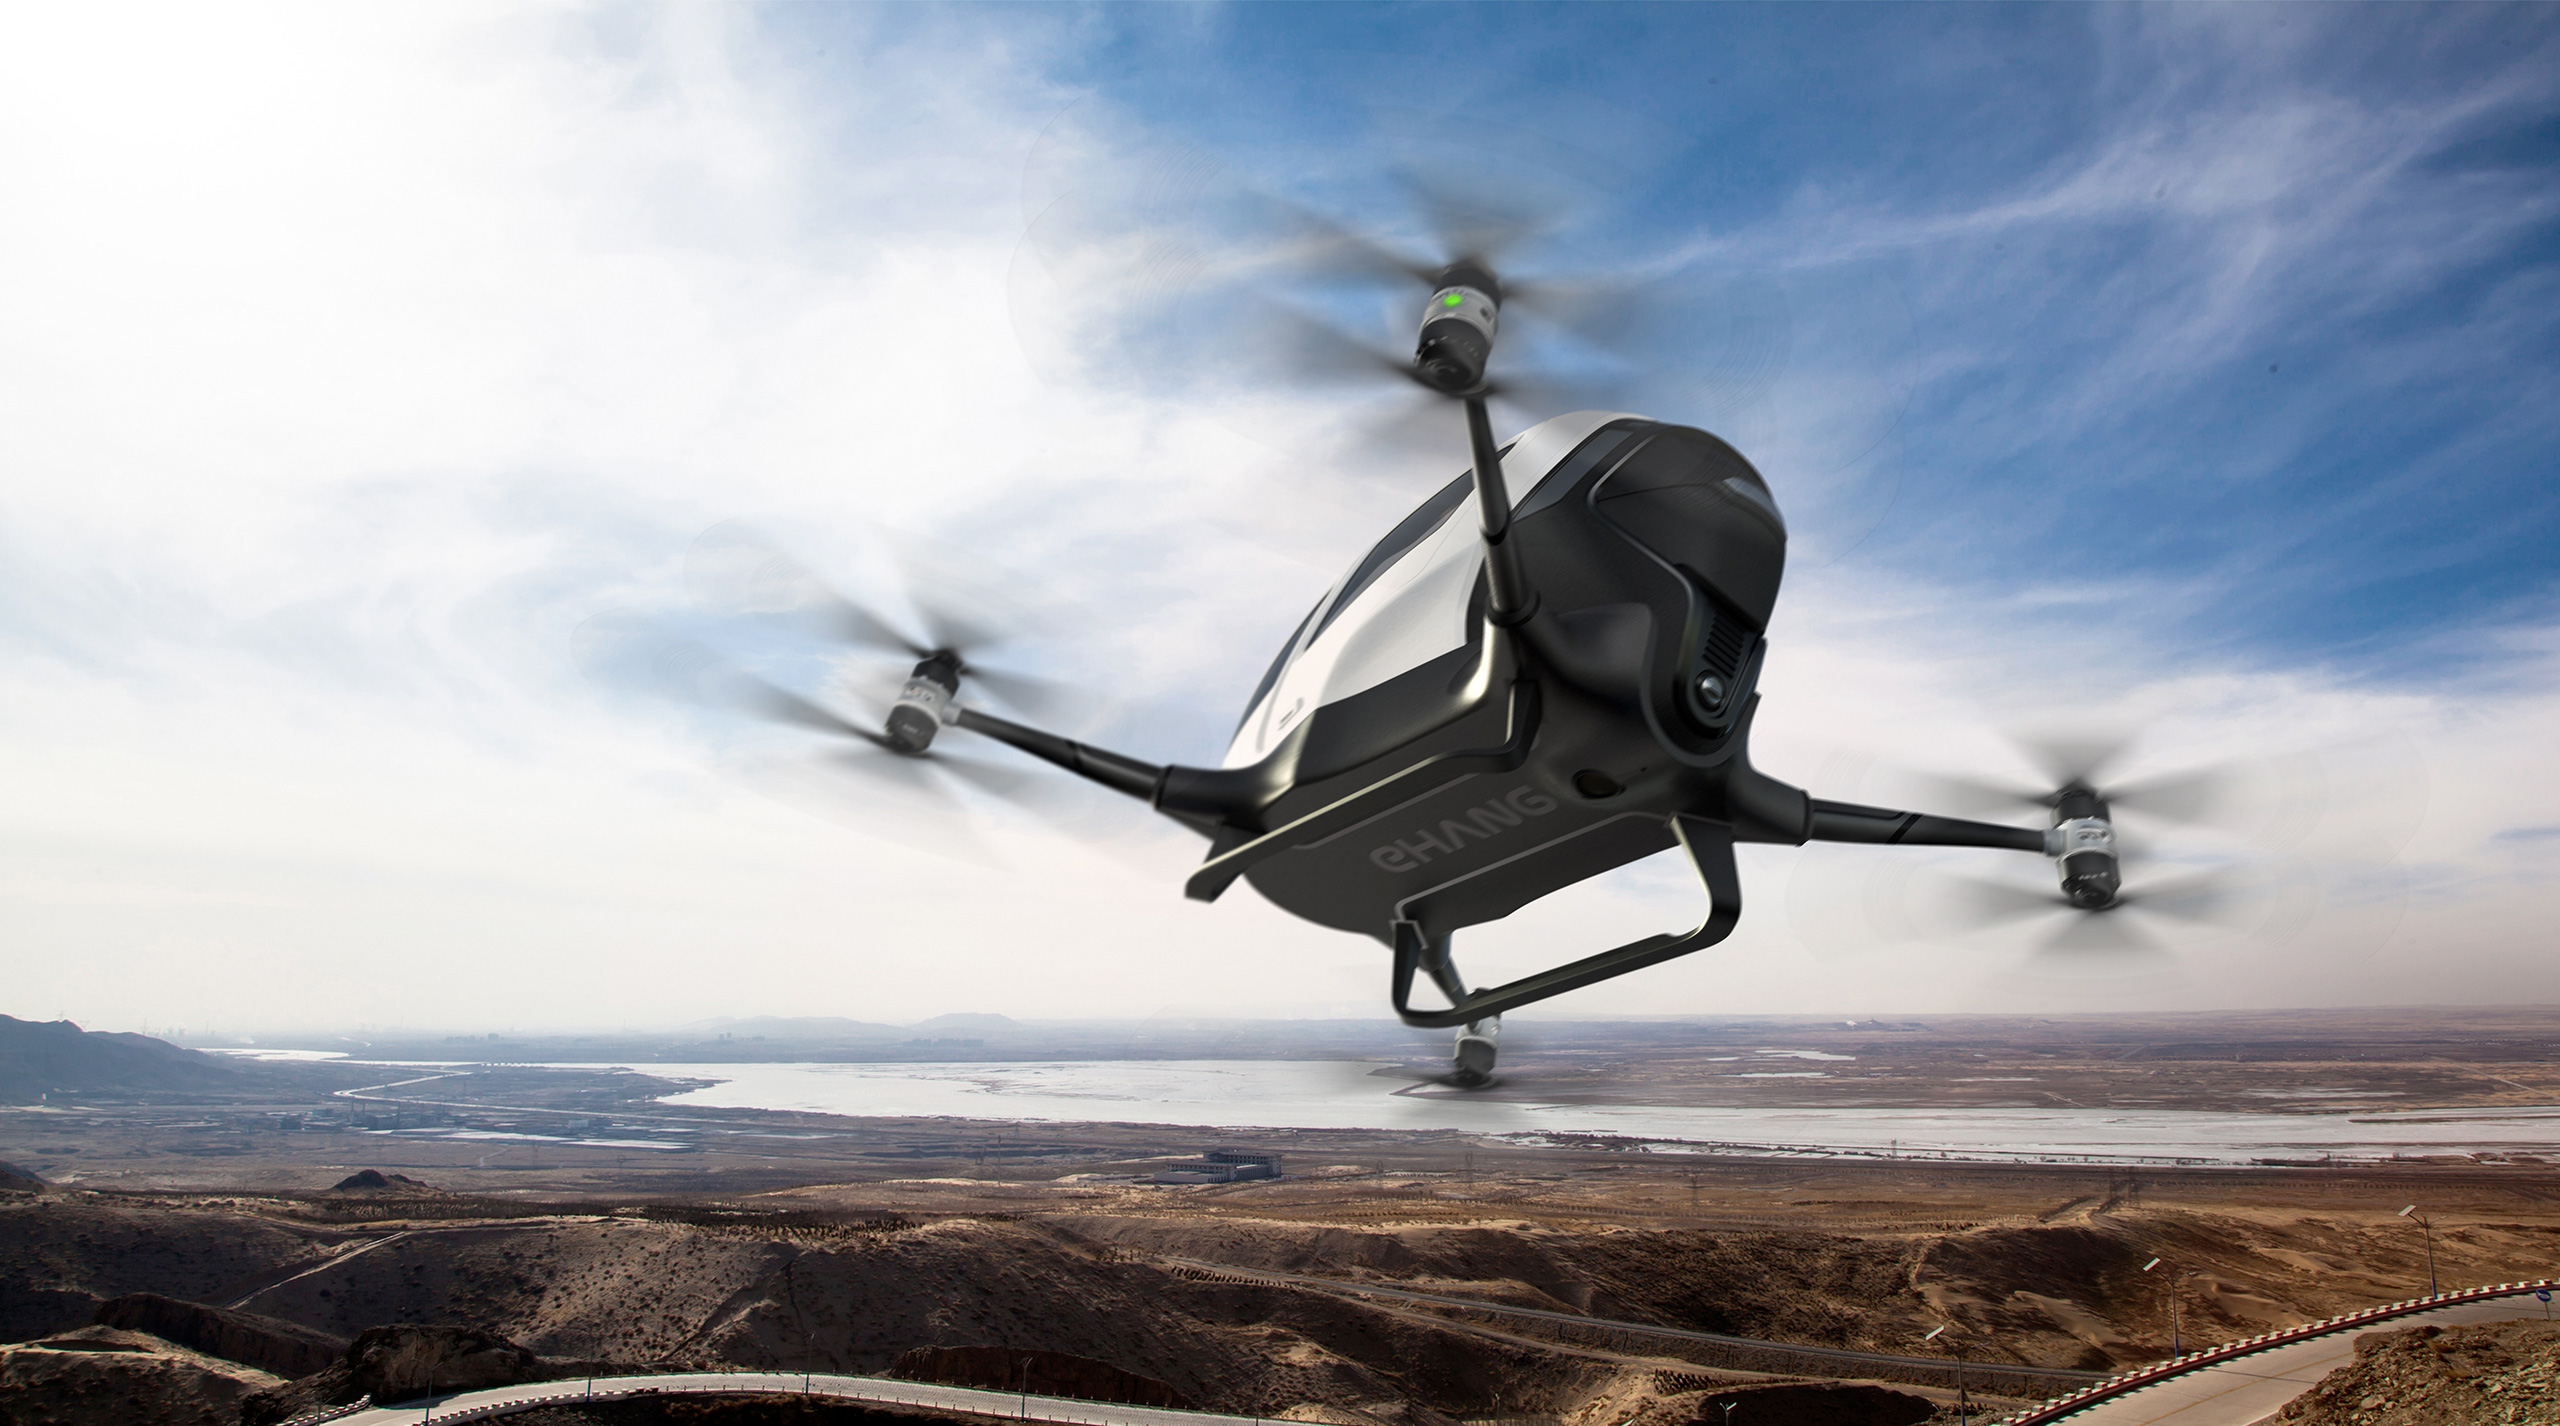 Only 1 in 20 Americans say they would feel safe riding a passenger drone